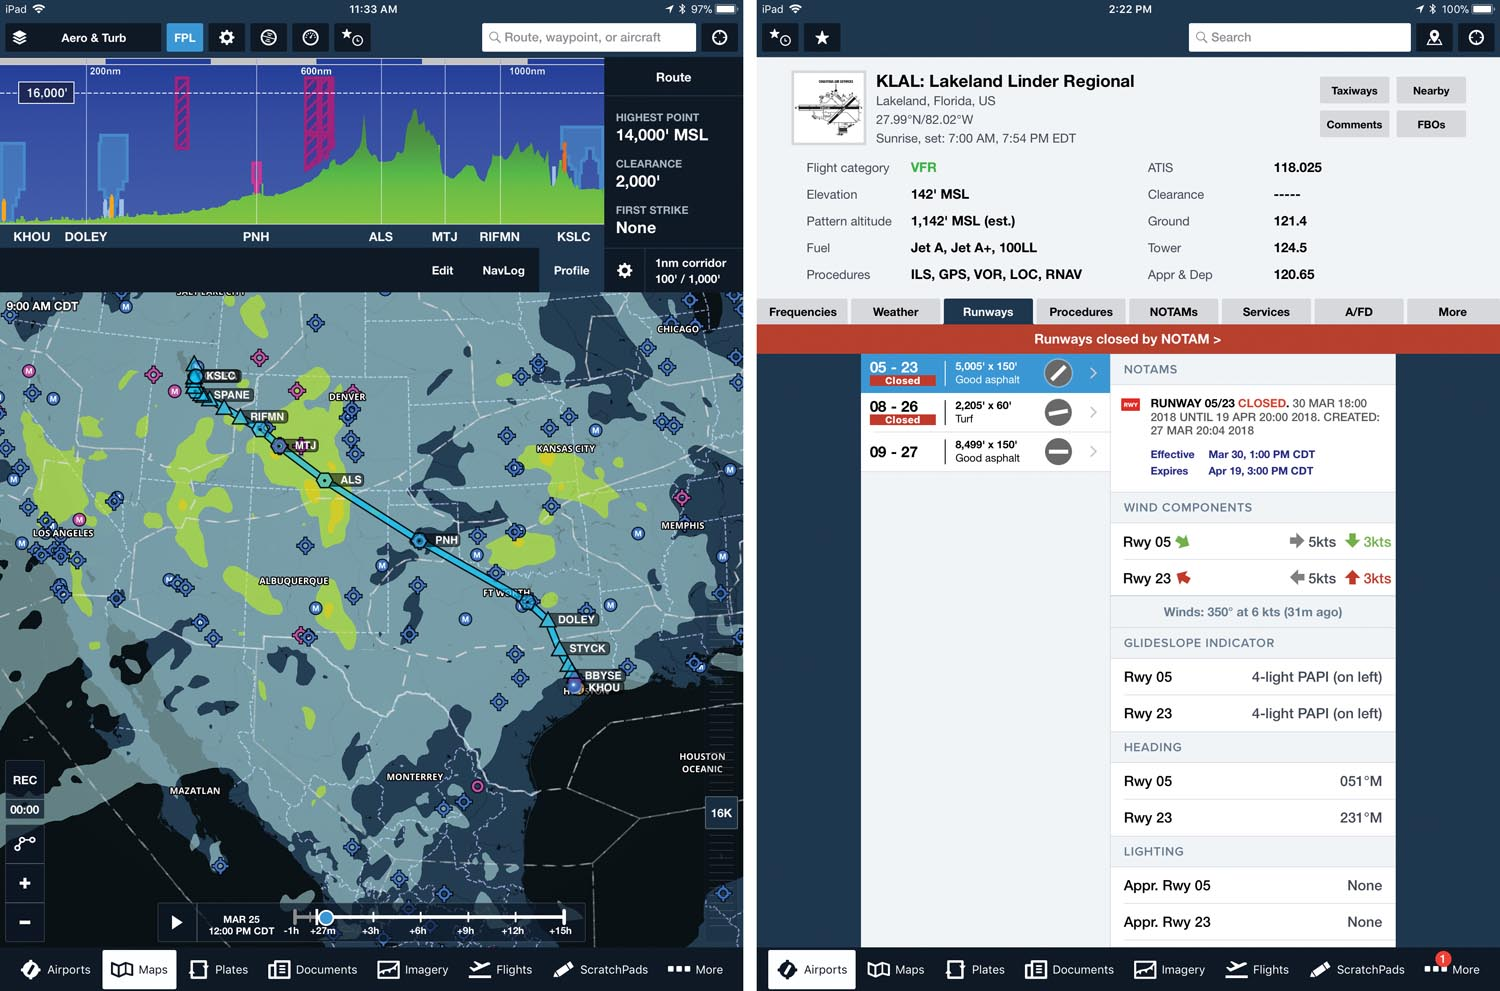 (Left) ForeFlight flight planning with turbulence layer. (Right) ForeFlight airport view for Lakeland, Florida, with runway closure warning.